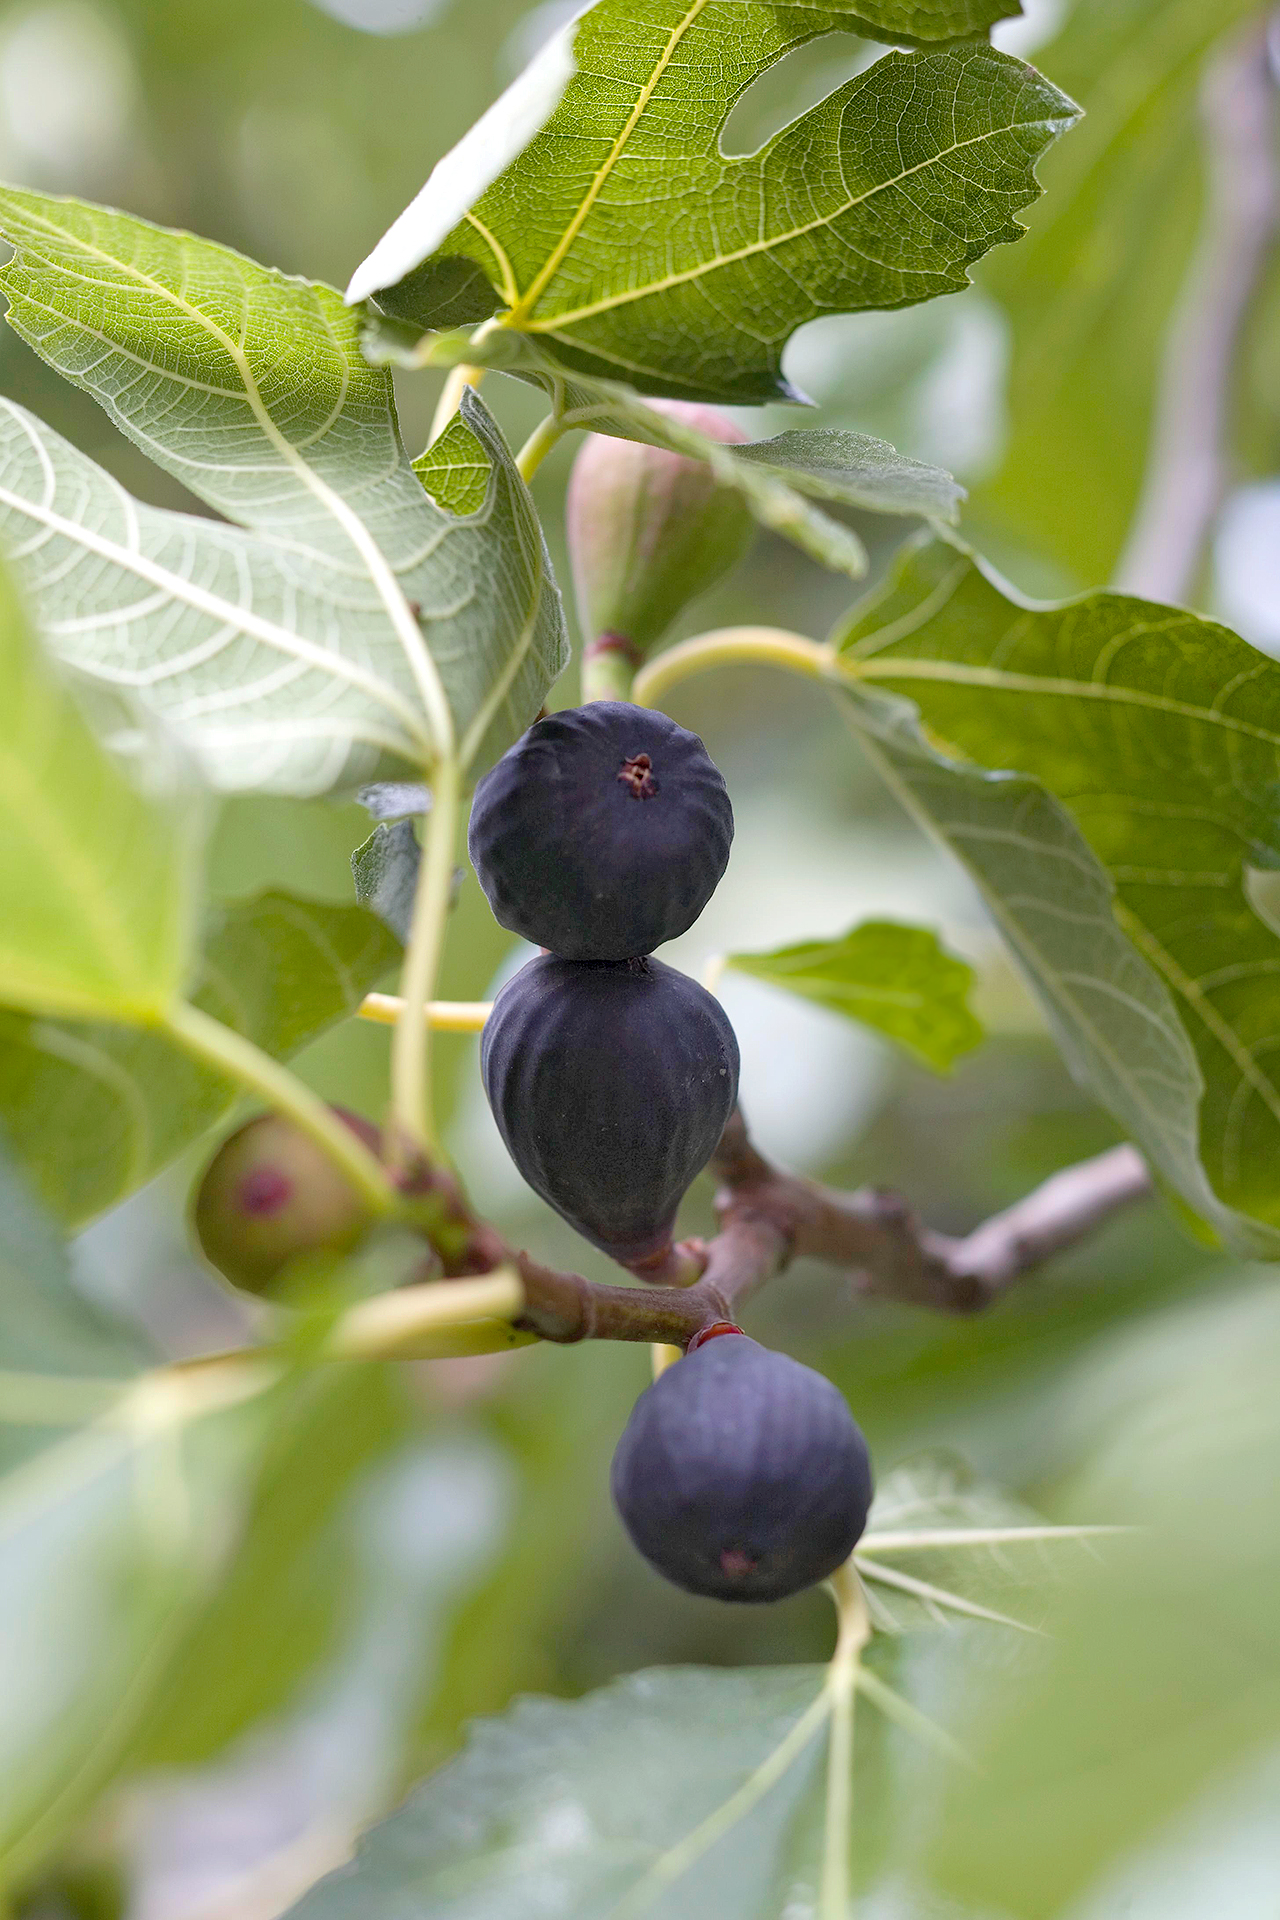 figs on branches of tree